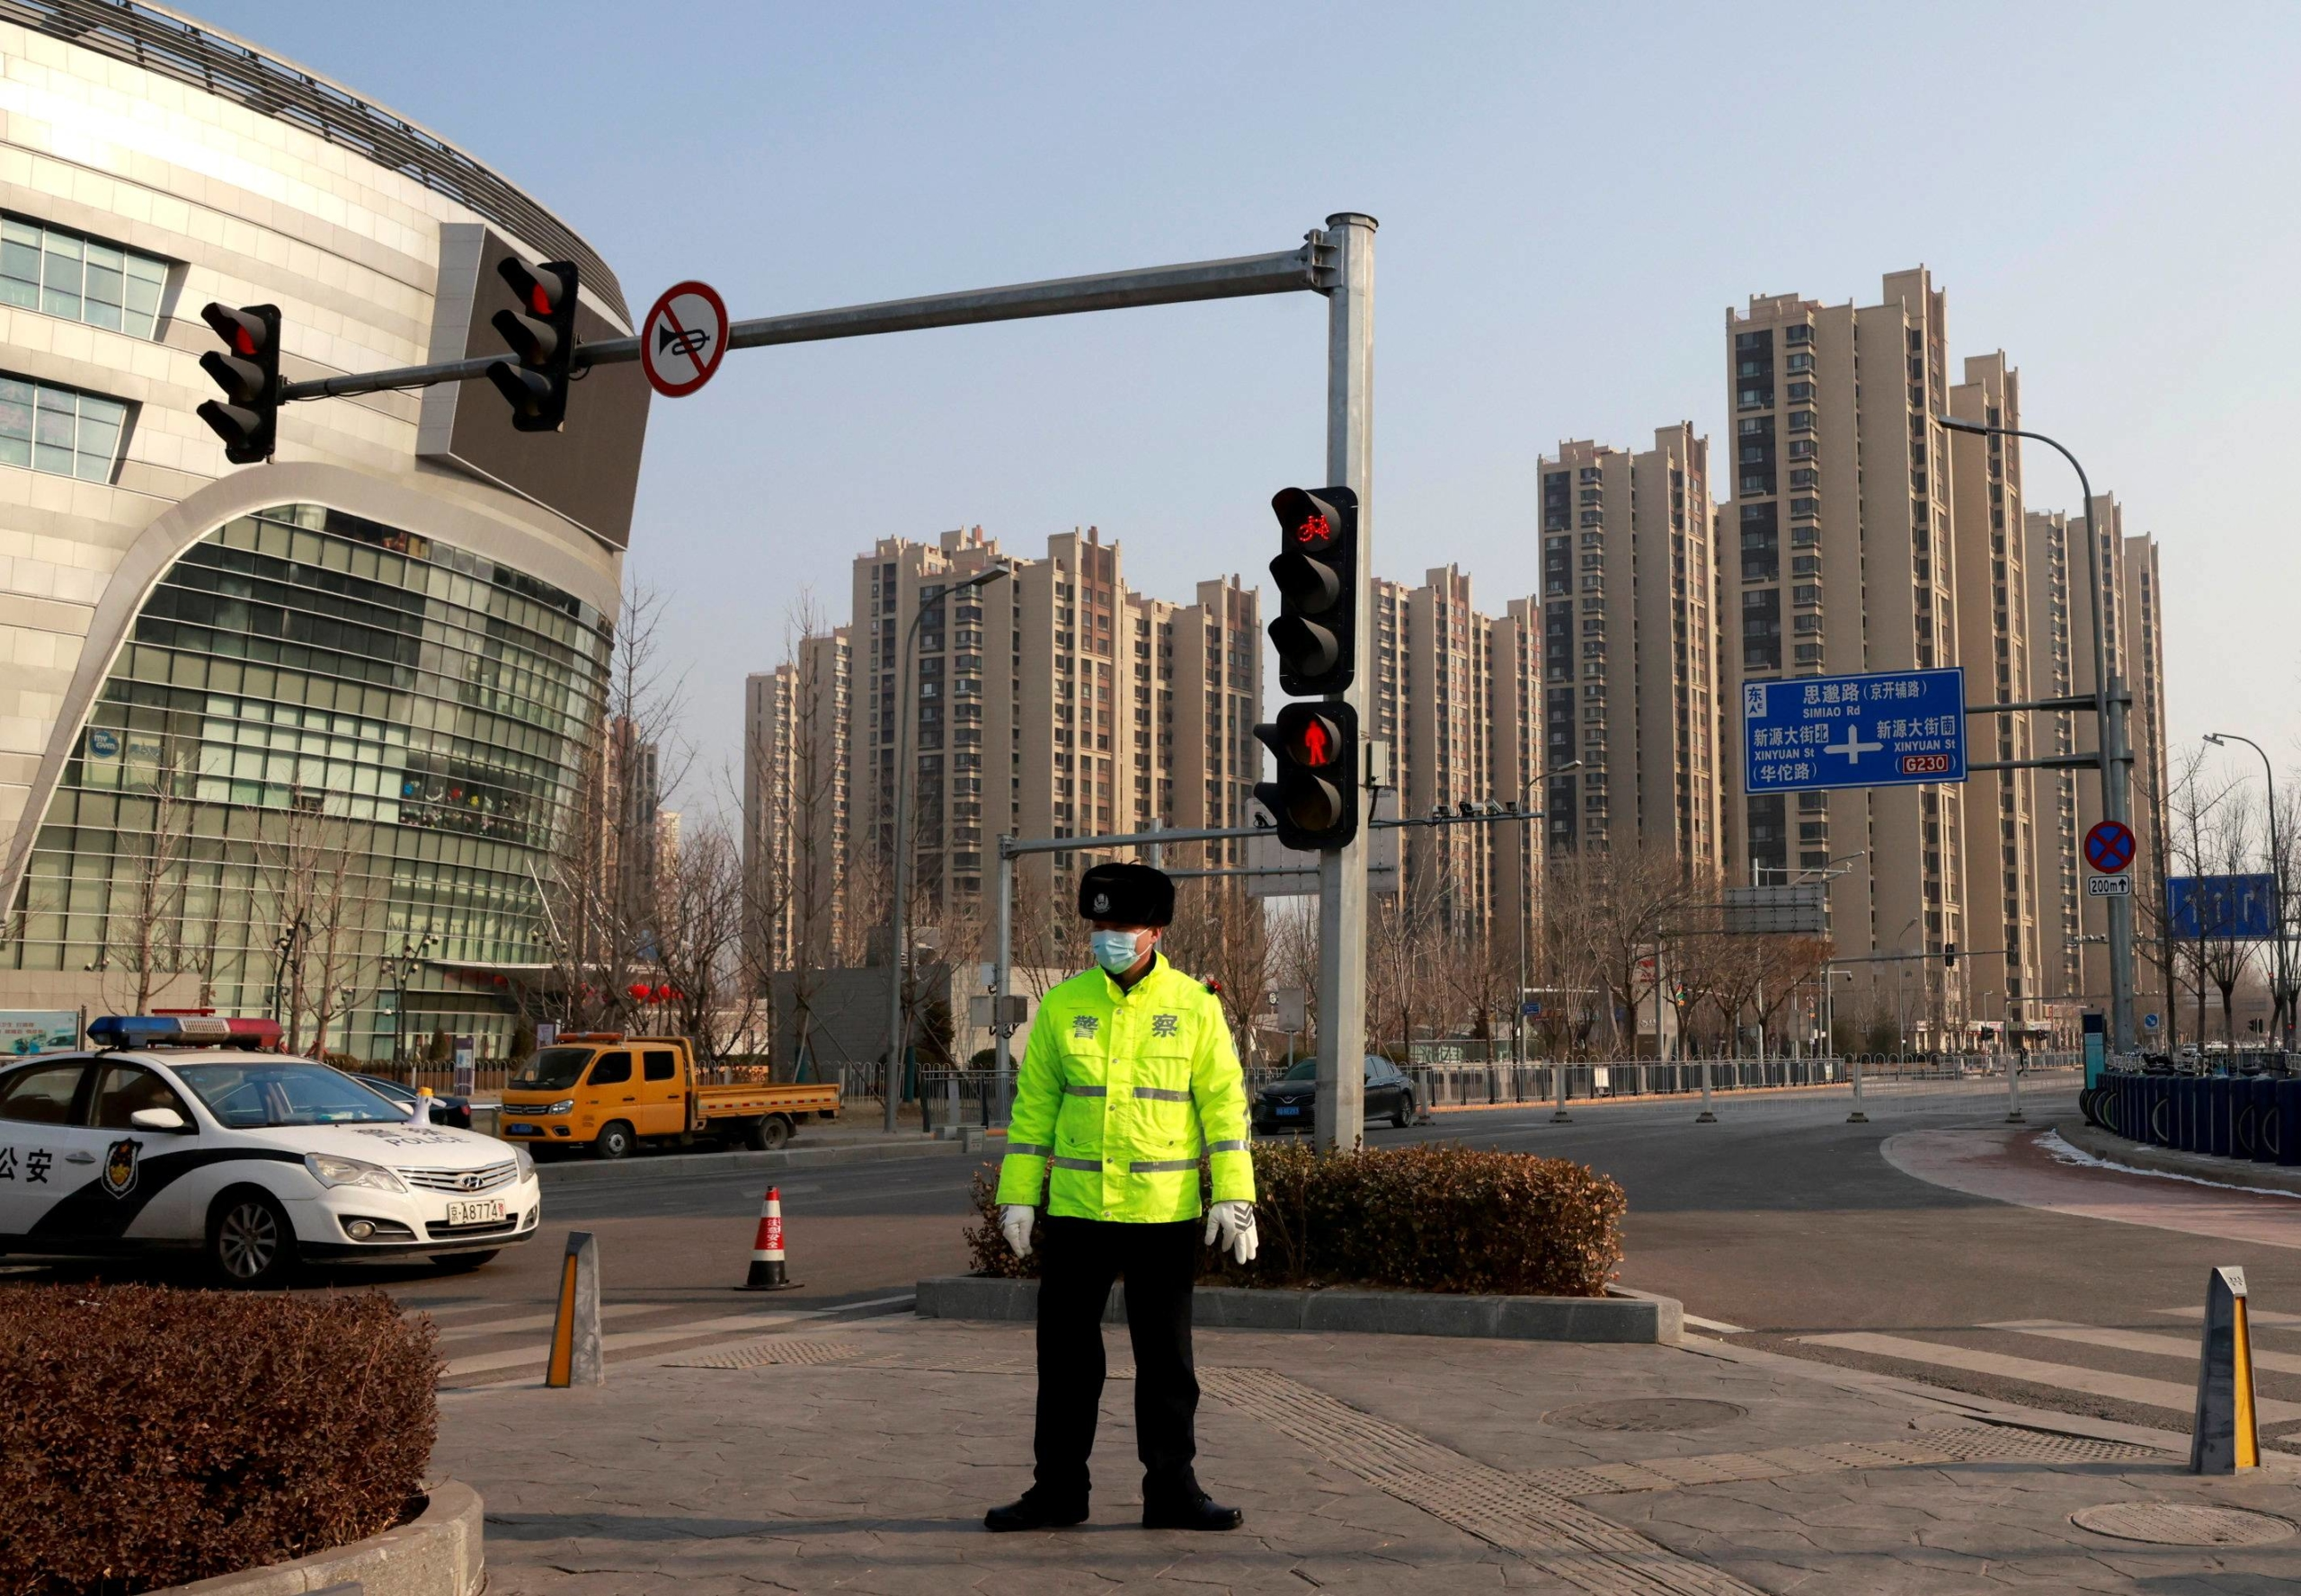 Police guard a blocked-off street in the Tiangongyuan area of Beijing's Daxing district on Wednesday following new cases of COVID-19.  | REUTERS